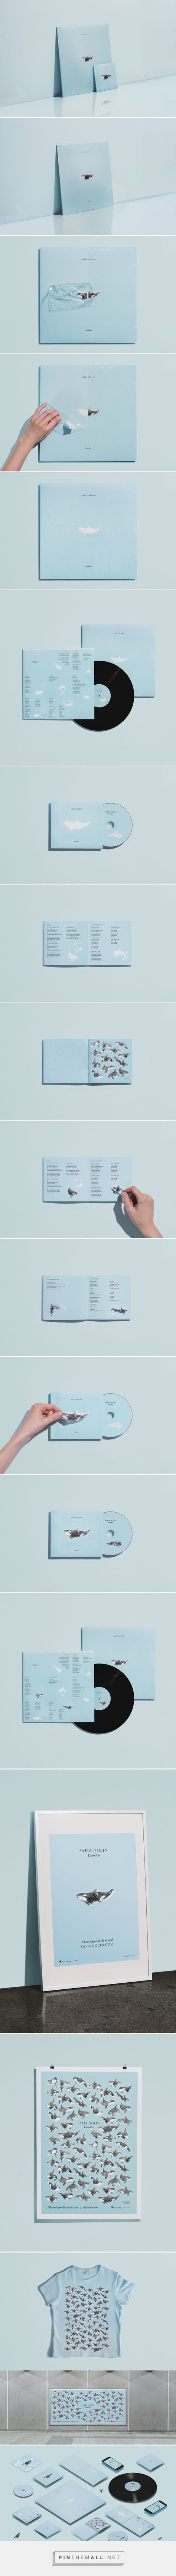 Safia Nolin, Limoilou. CD and Vinyl Packaging on Behance... - a grouped images picture - Pin Them All